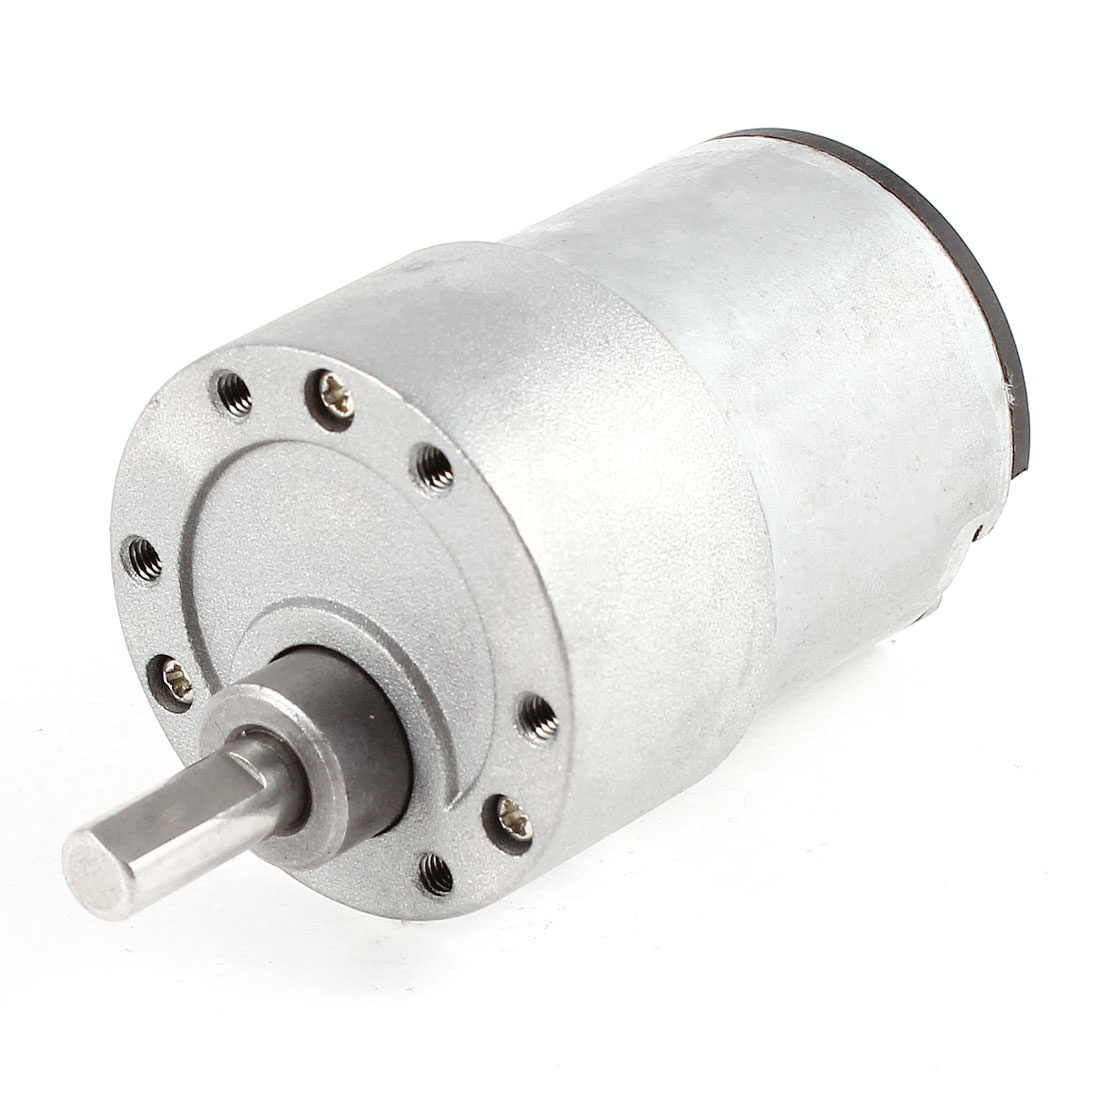 DC 12V 937RPM 6mm Dia Shaft Gear Box Speed Reduction Motor for Intelligent Robot